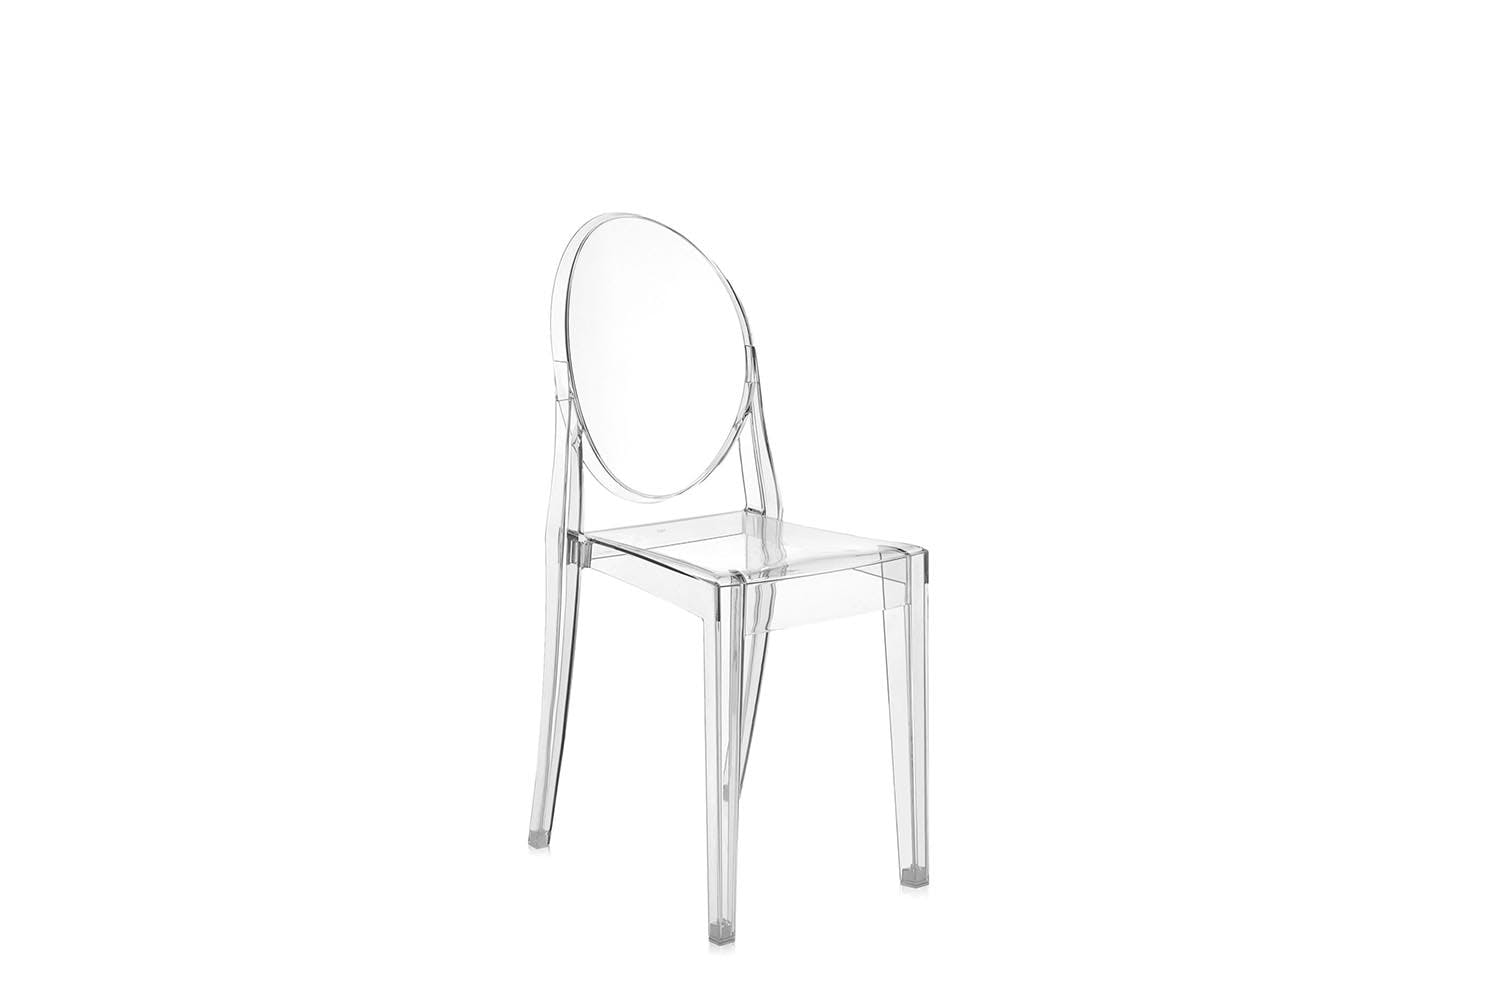 victoria ghost chair by philippe starck for kartell  space furniture -